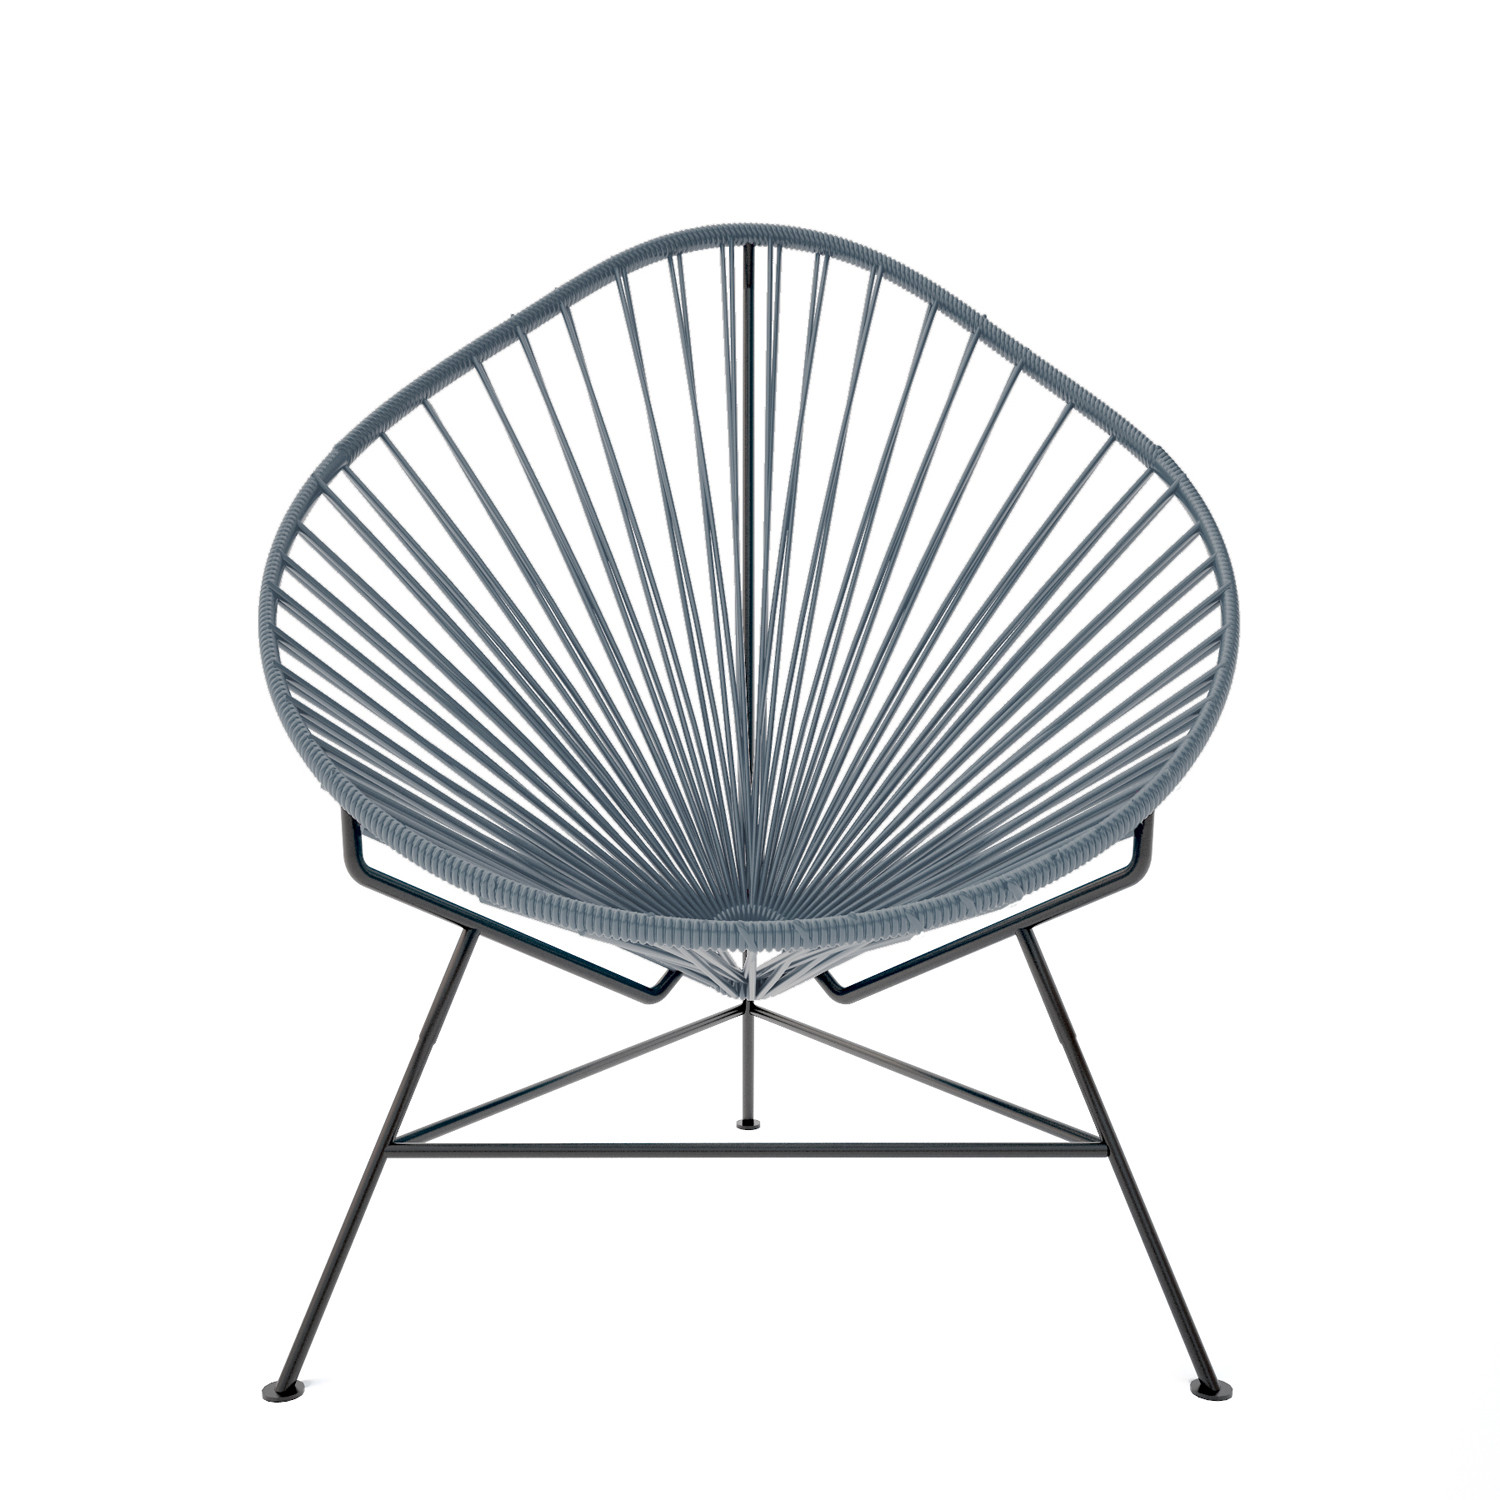 innit acapulco chair french desk grey weave on black frame touch of modern 25a2d24289cf0e7500d8a0ba7fed110f medium